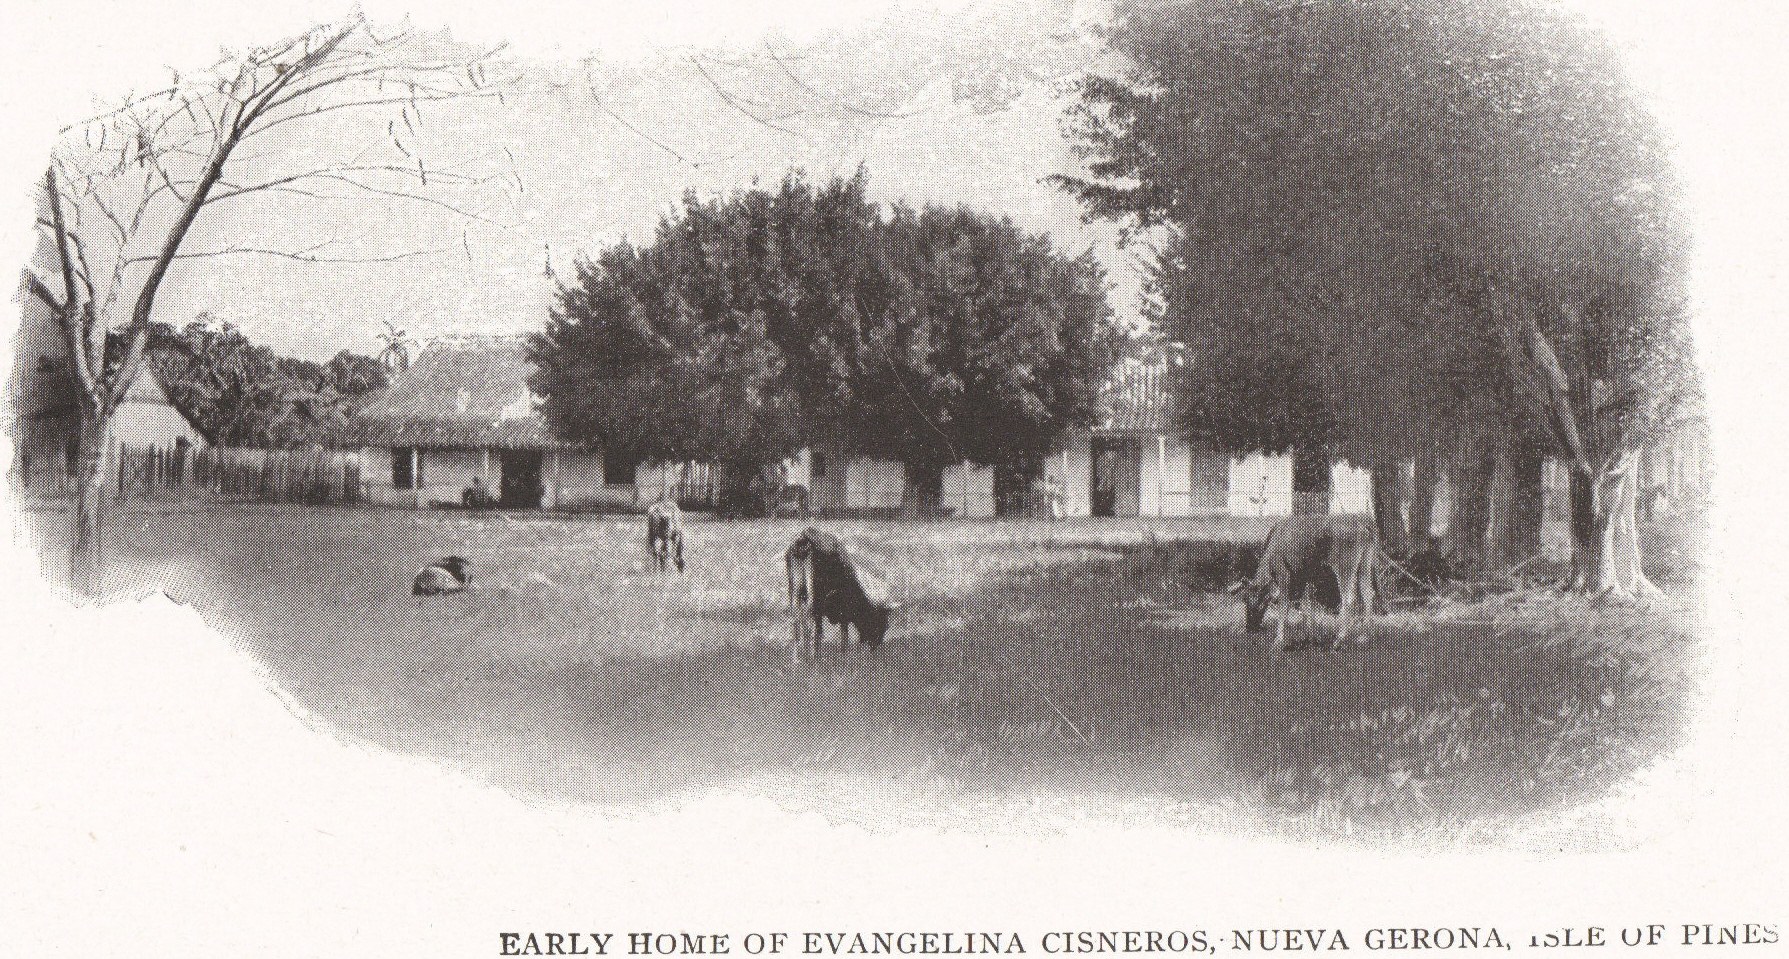 EARLY HOME OF EVANGELINA CISNEROS, NUEVA GERONA, ISLE OF PINES (ISLA DE LA JUVENTUD), CUBA